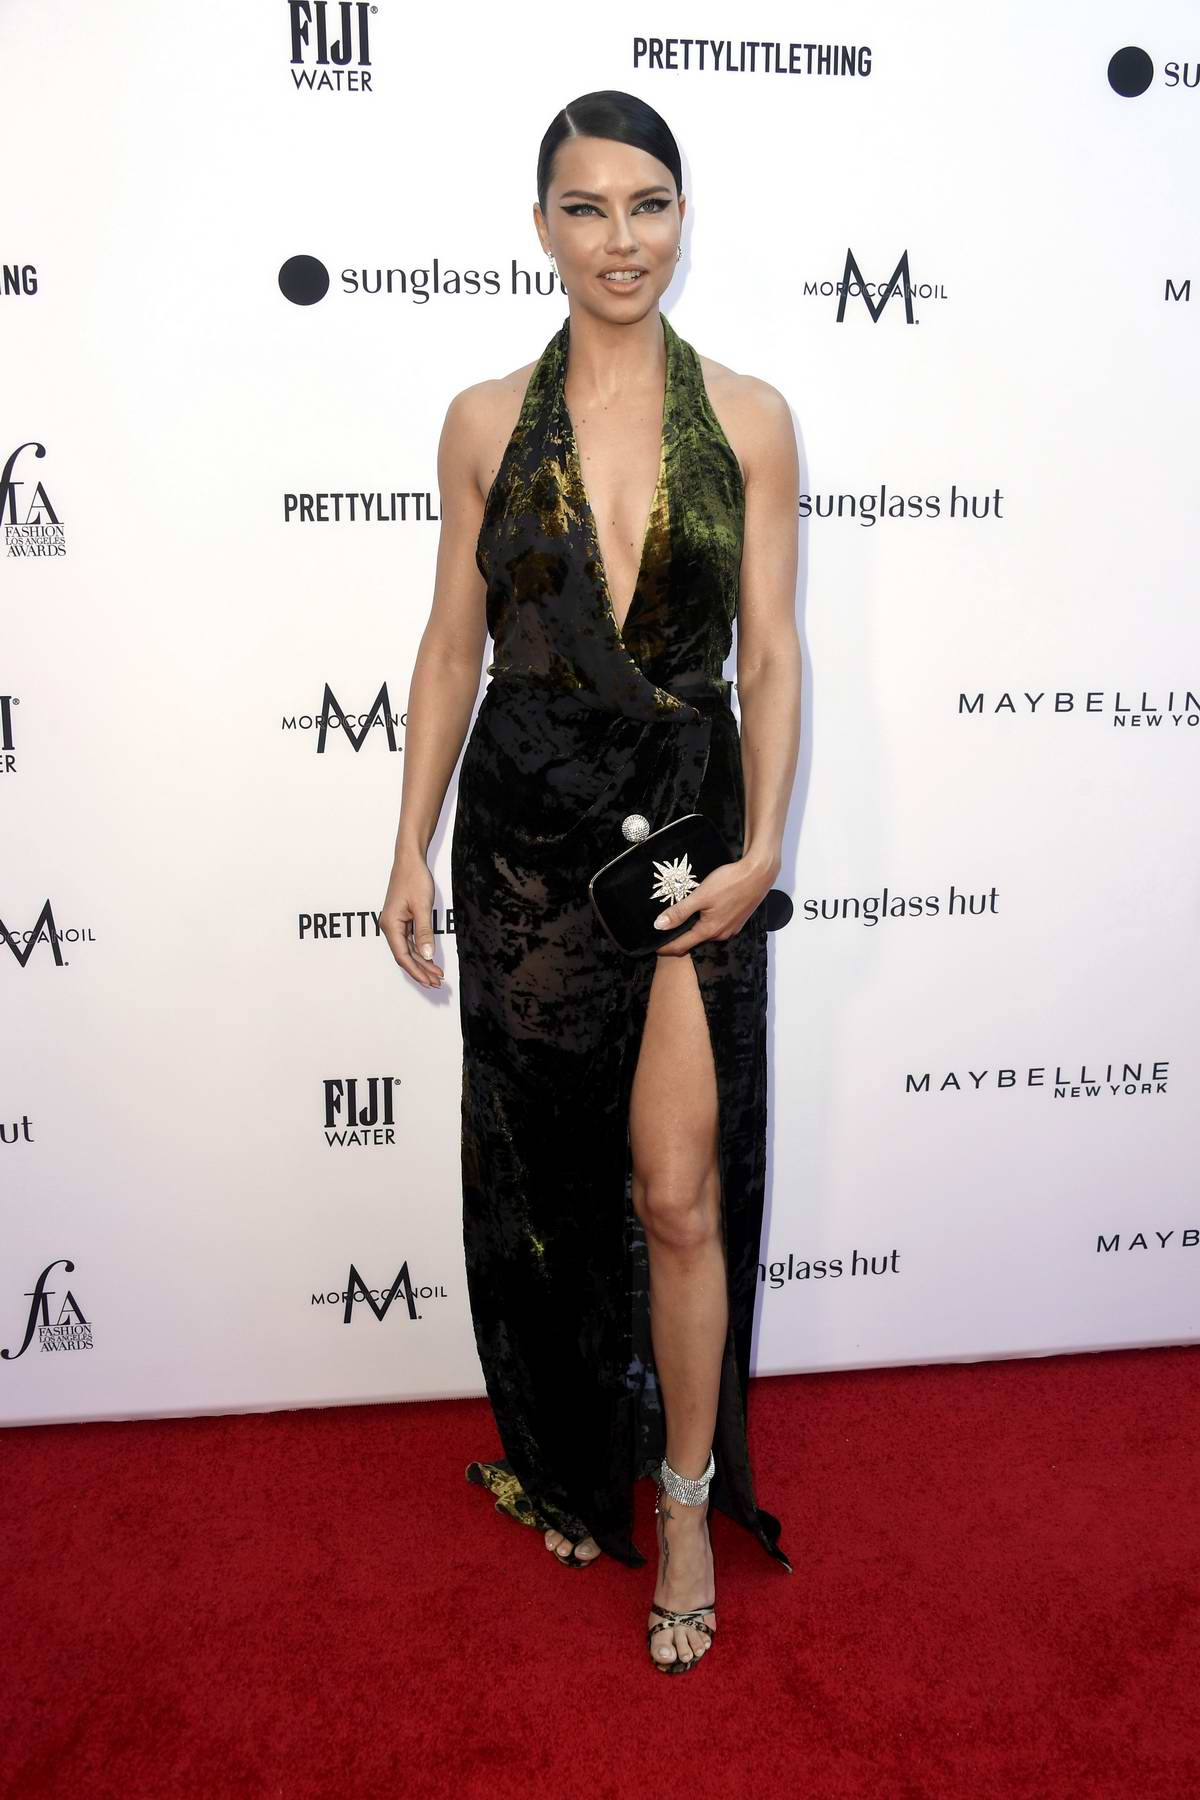 Adriana Lima attends The Daily Front Row's 5th Annual Fashion Awards at The Beverly Hills Hotel in Los Angeles